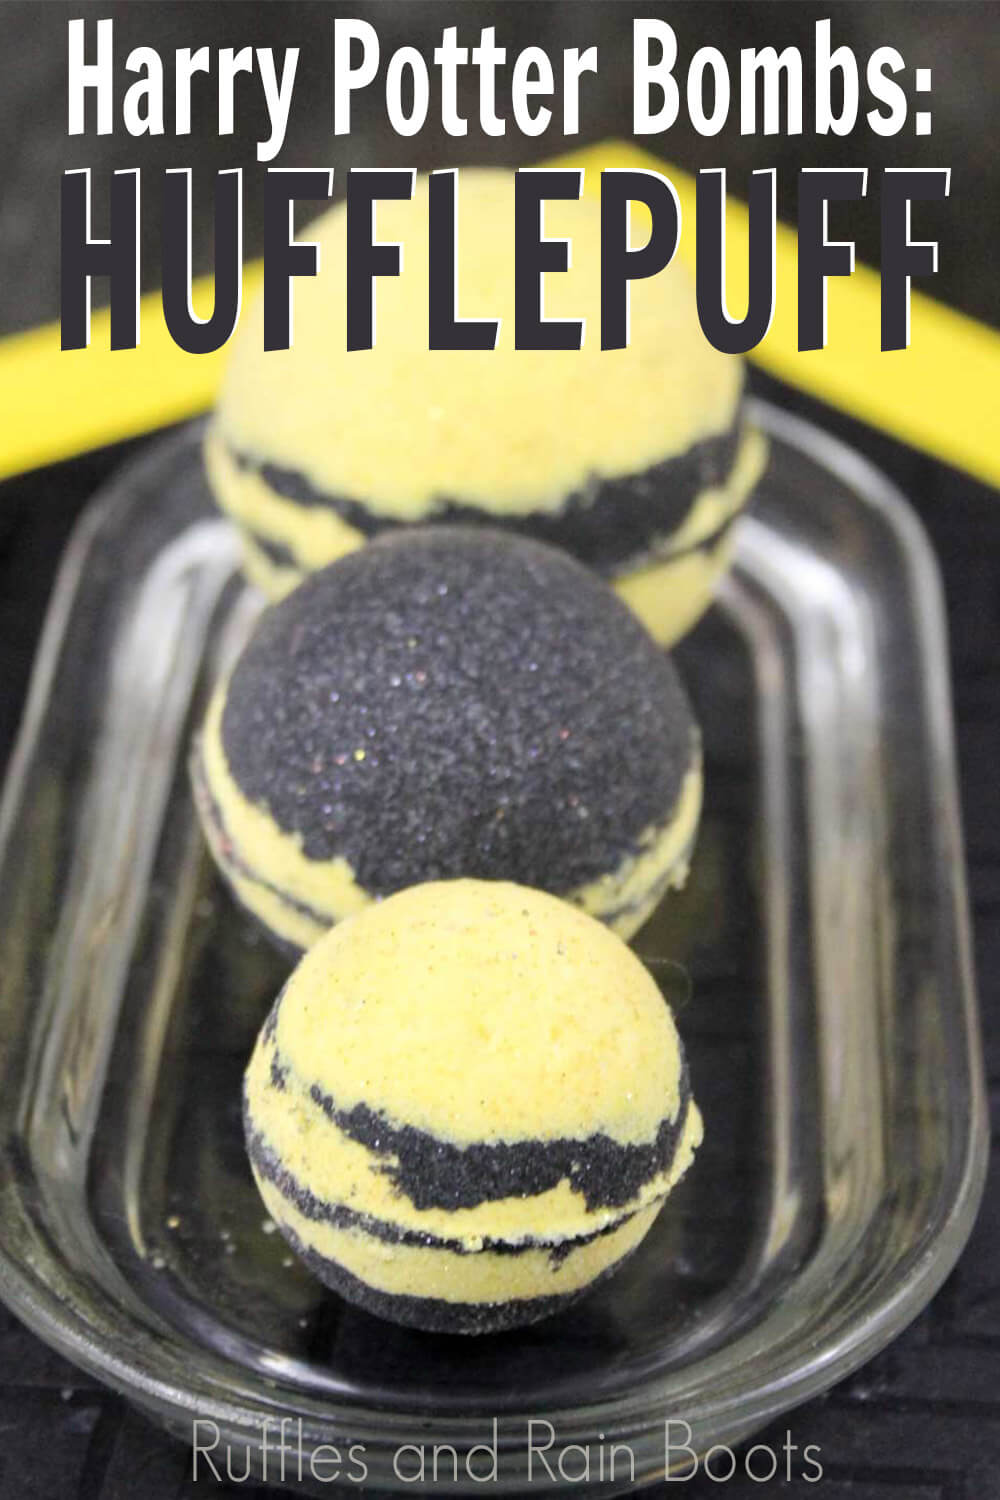 harry potter bath bombs hufflepuff with text which reads harry potter bath bombs: hufflepuff